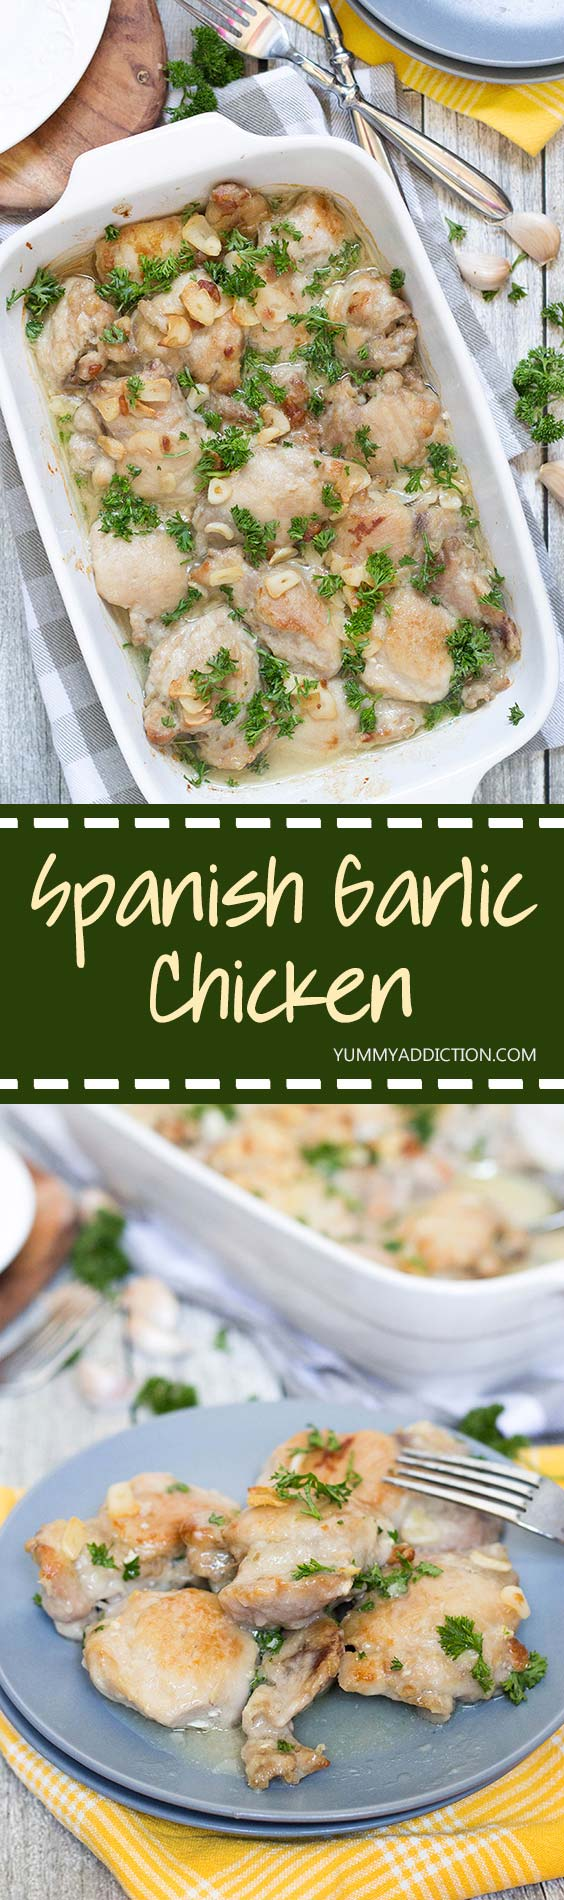 Pollo al Ajillo will surely become one of your favorite dinner recipes. This Spanish Garlic Chicken is super delicious! Oh and the wine and garlic sauce is just perfect. | yummyaddiction.com